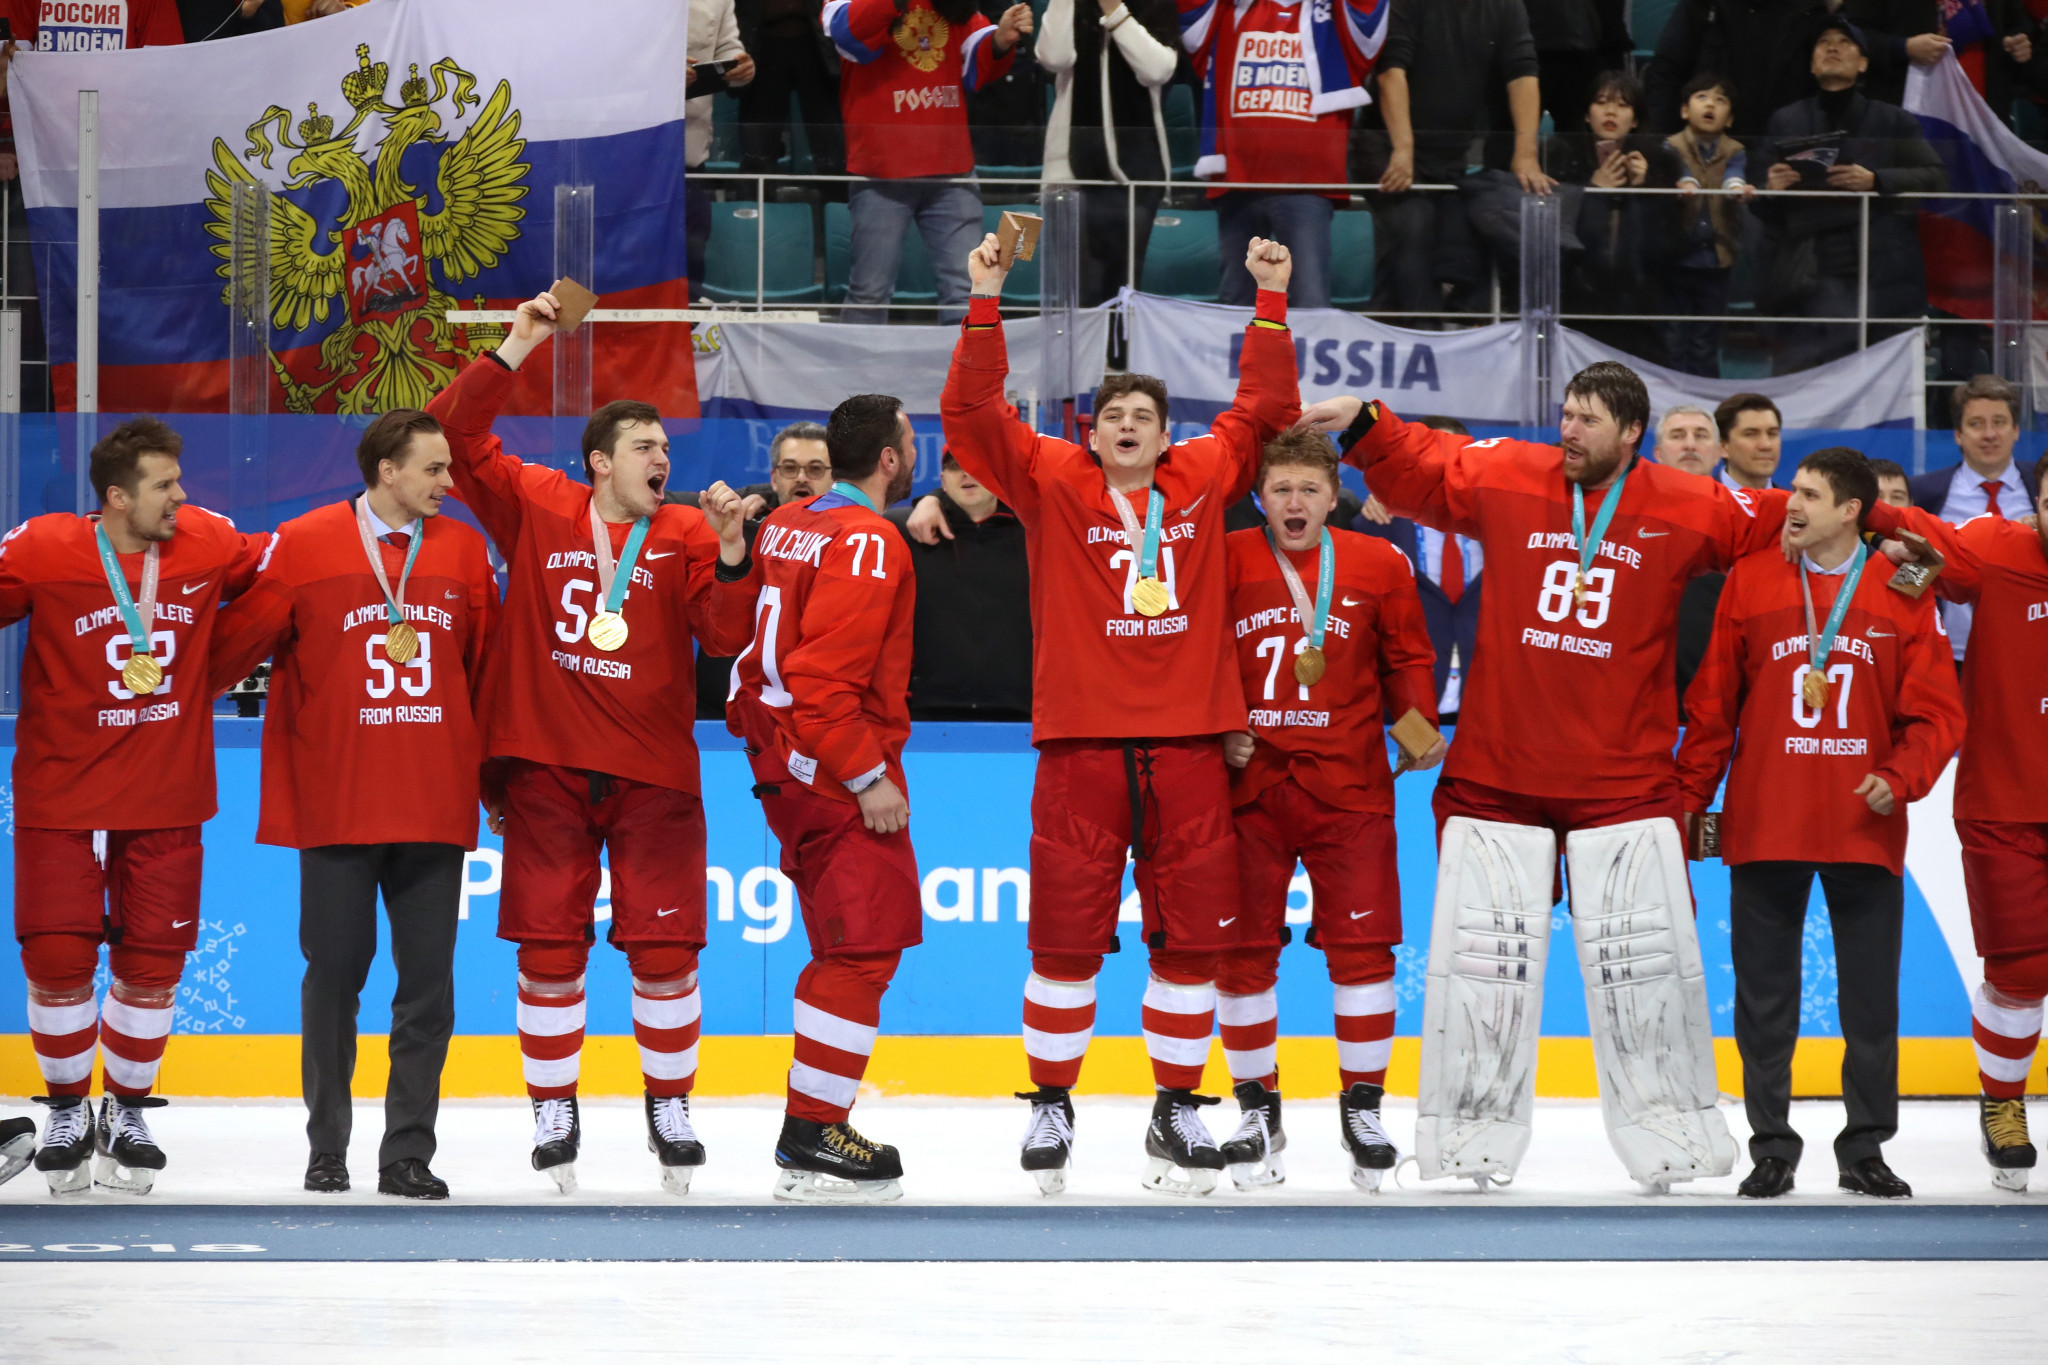 OAR athletes sung the Russian National Anthem after their ice hockey gold in Pyeongchang, despite an IOC ban ©Getty Images